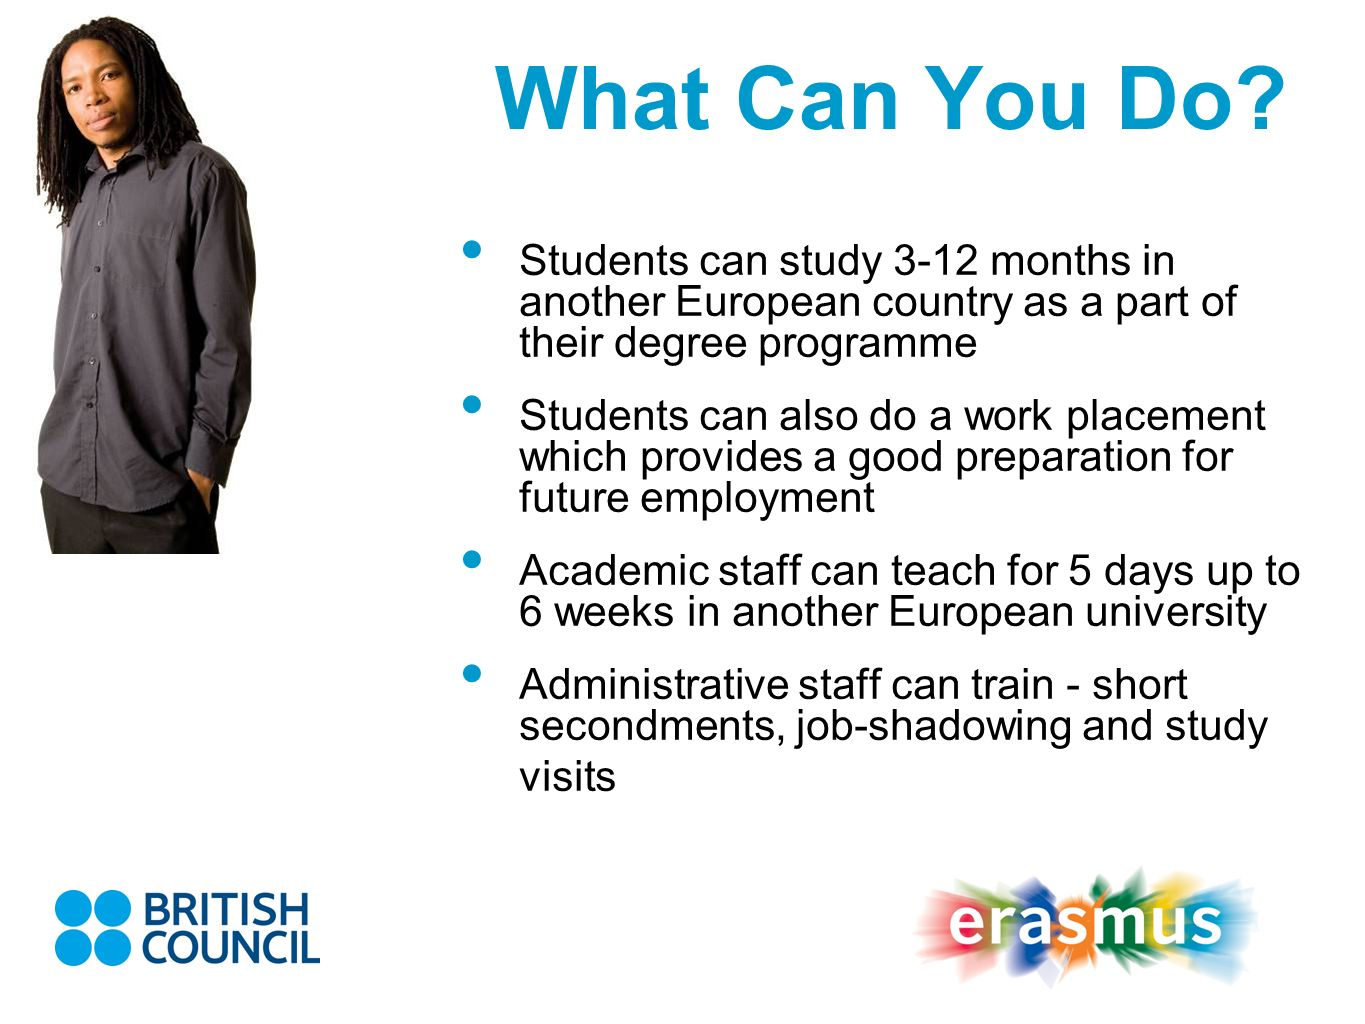 What Can You Do Students can study 3-12 months in another European country as a part of their degree programme.